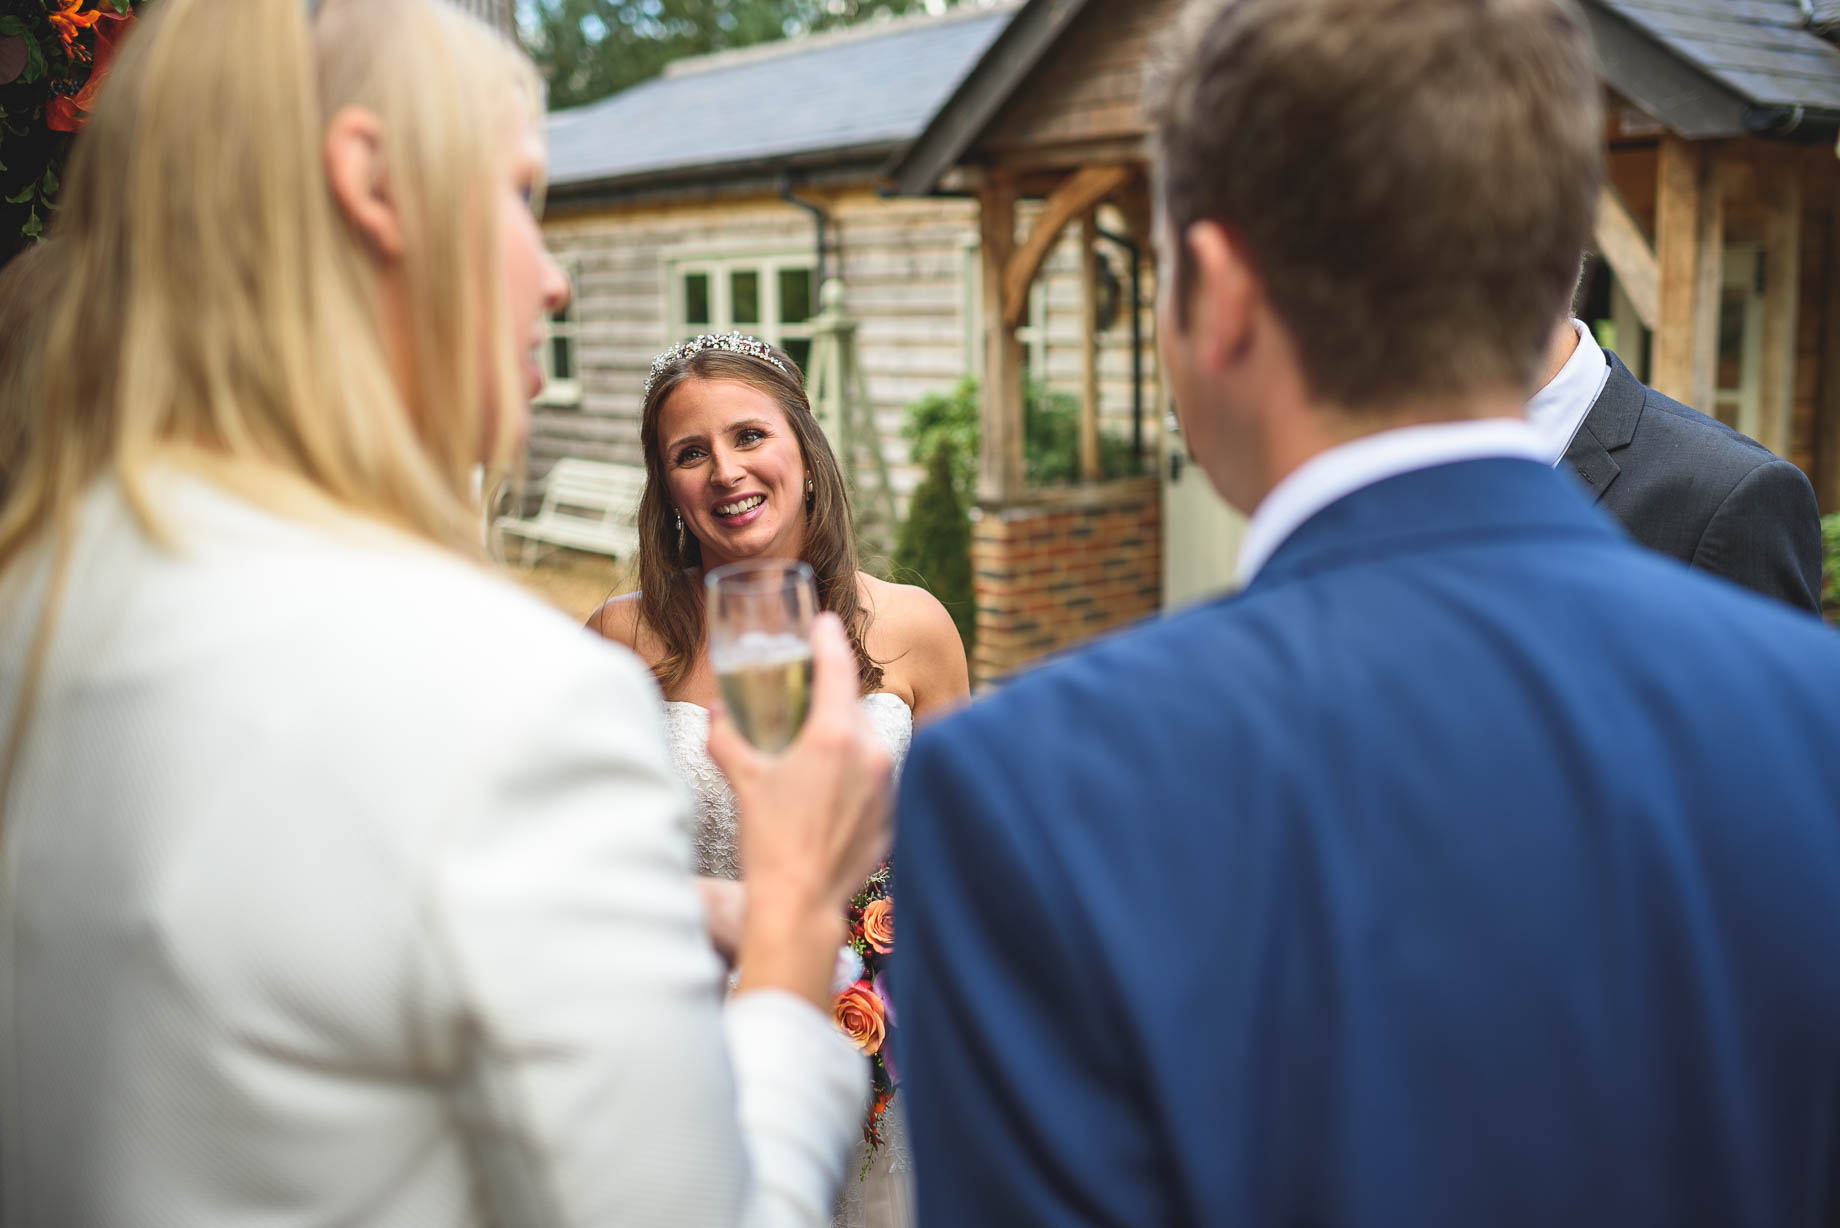 Gate Street Barn wedding photography - Guy Collier - Claire and Andy (100 of 192)